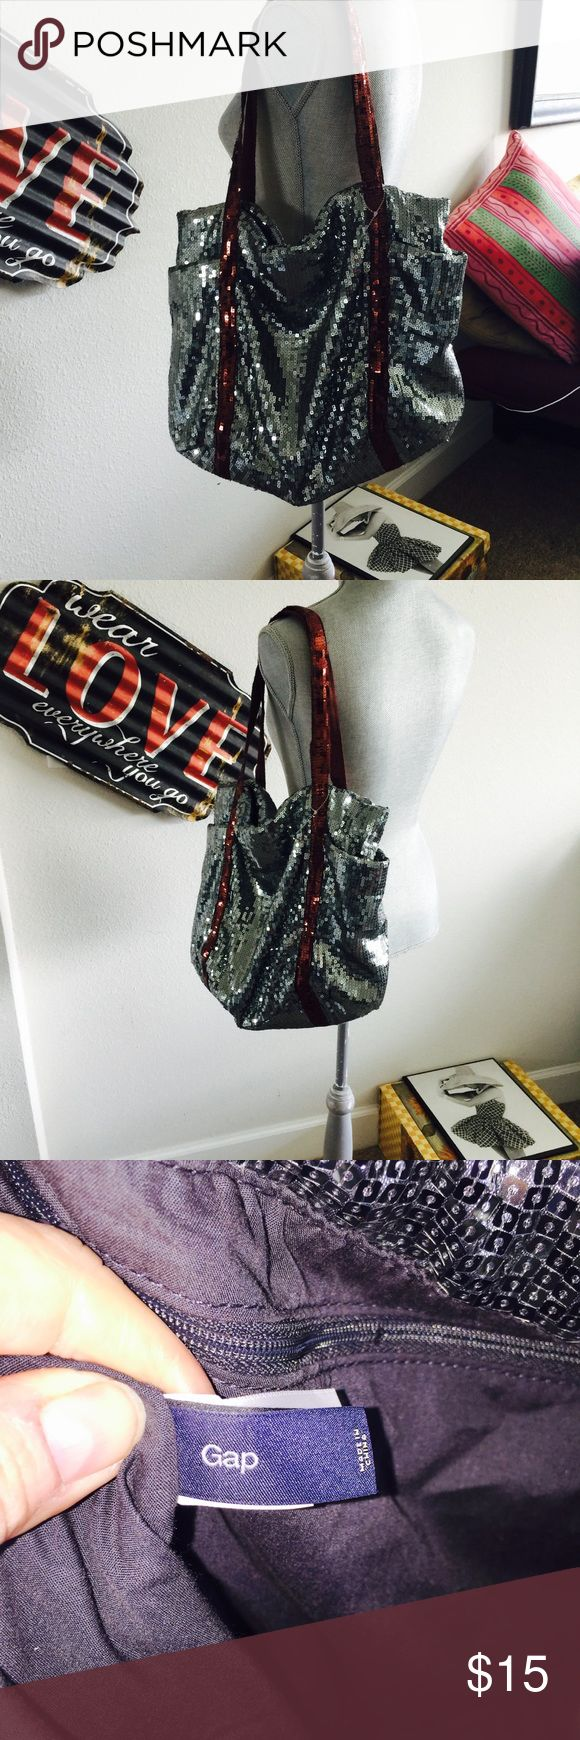 Sliver sequence Gap tote Bag Good Condition!! I have never used but have had in closet for a while. No tears no sequence missing there are some fuzzies please look at photos. GAP Bags Totes